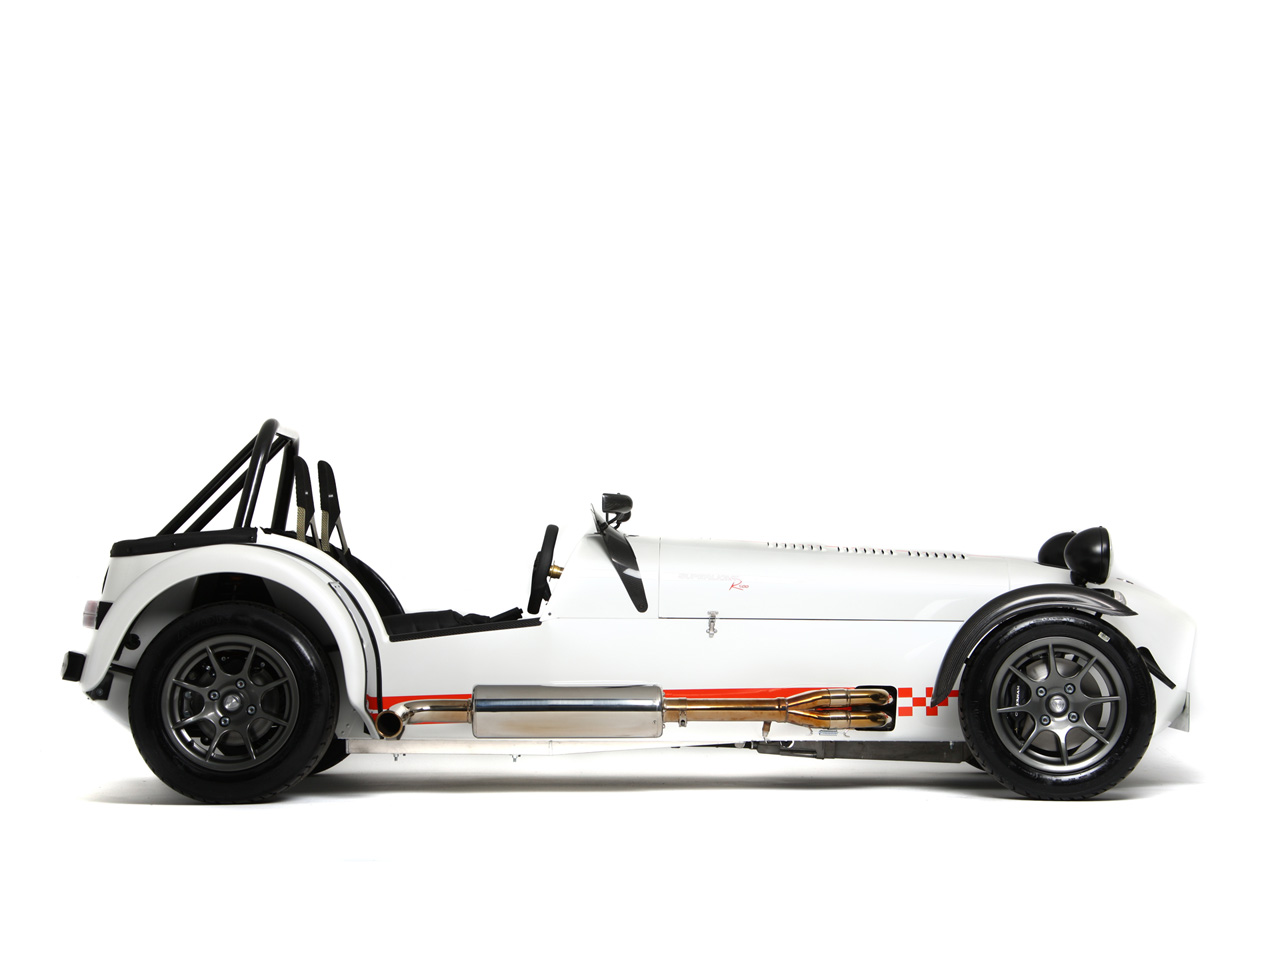 2008 Caterham Seven Superlight R500 - Side - 1280x960 - Wallpaper